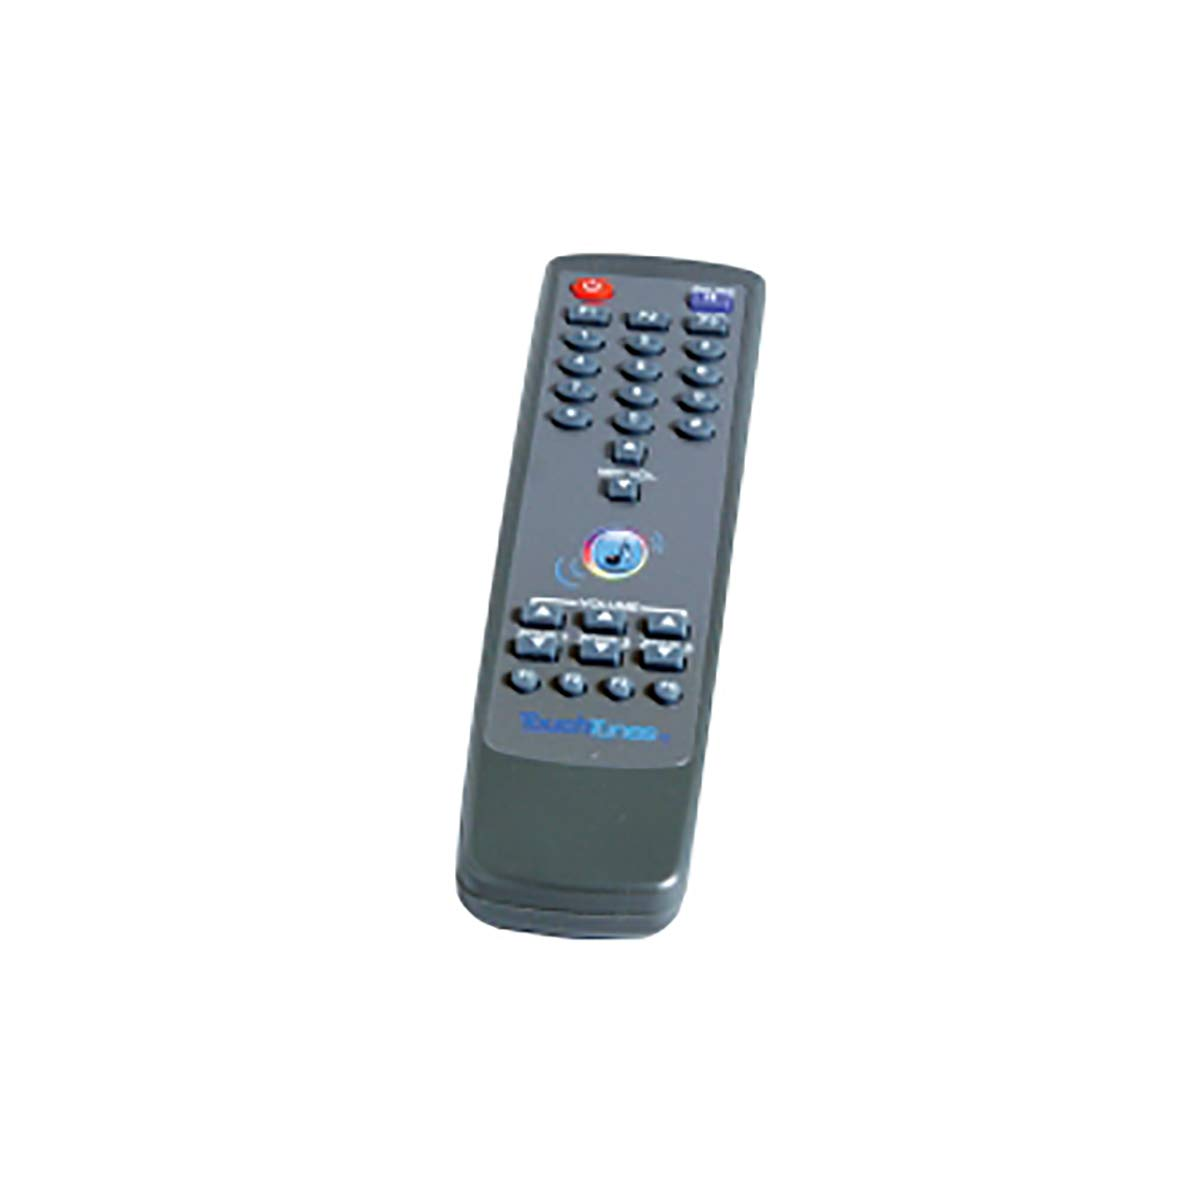 Amazon com: TouchTunes Universal Remote-Grey: Sports & Outdoors